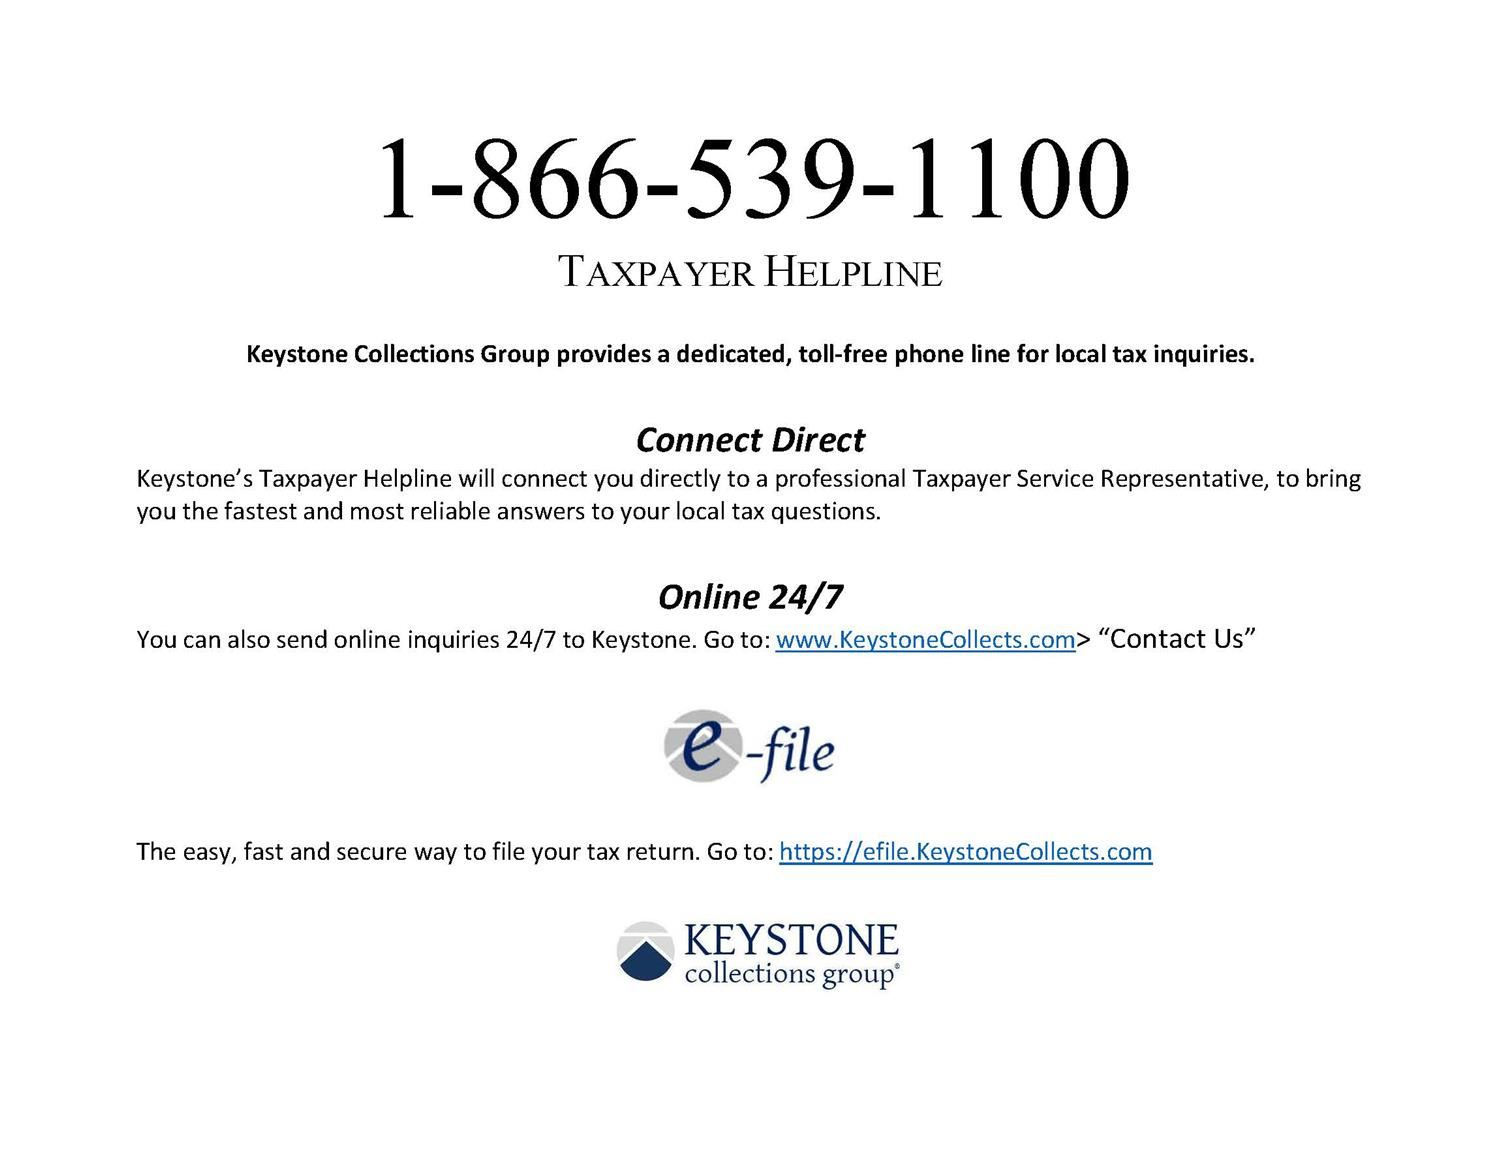 Taxpayer Hotline from Keystone Collection Group